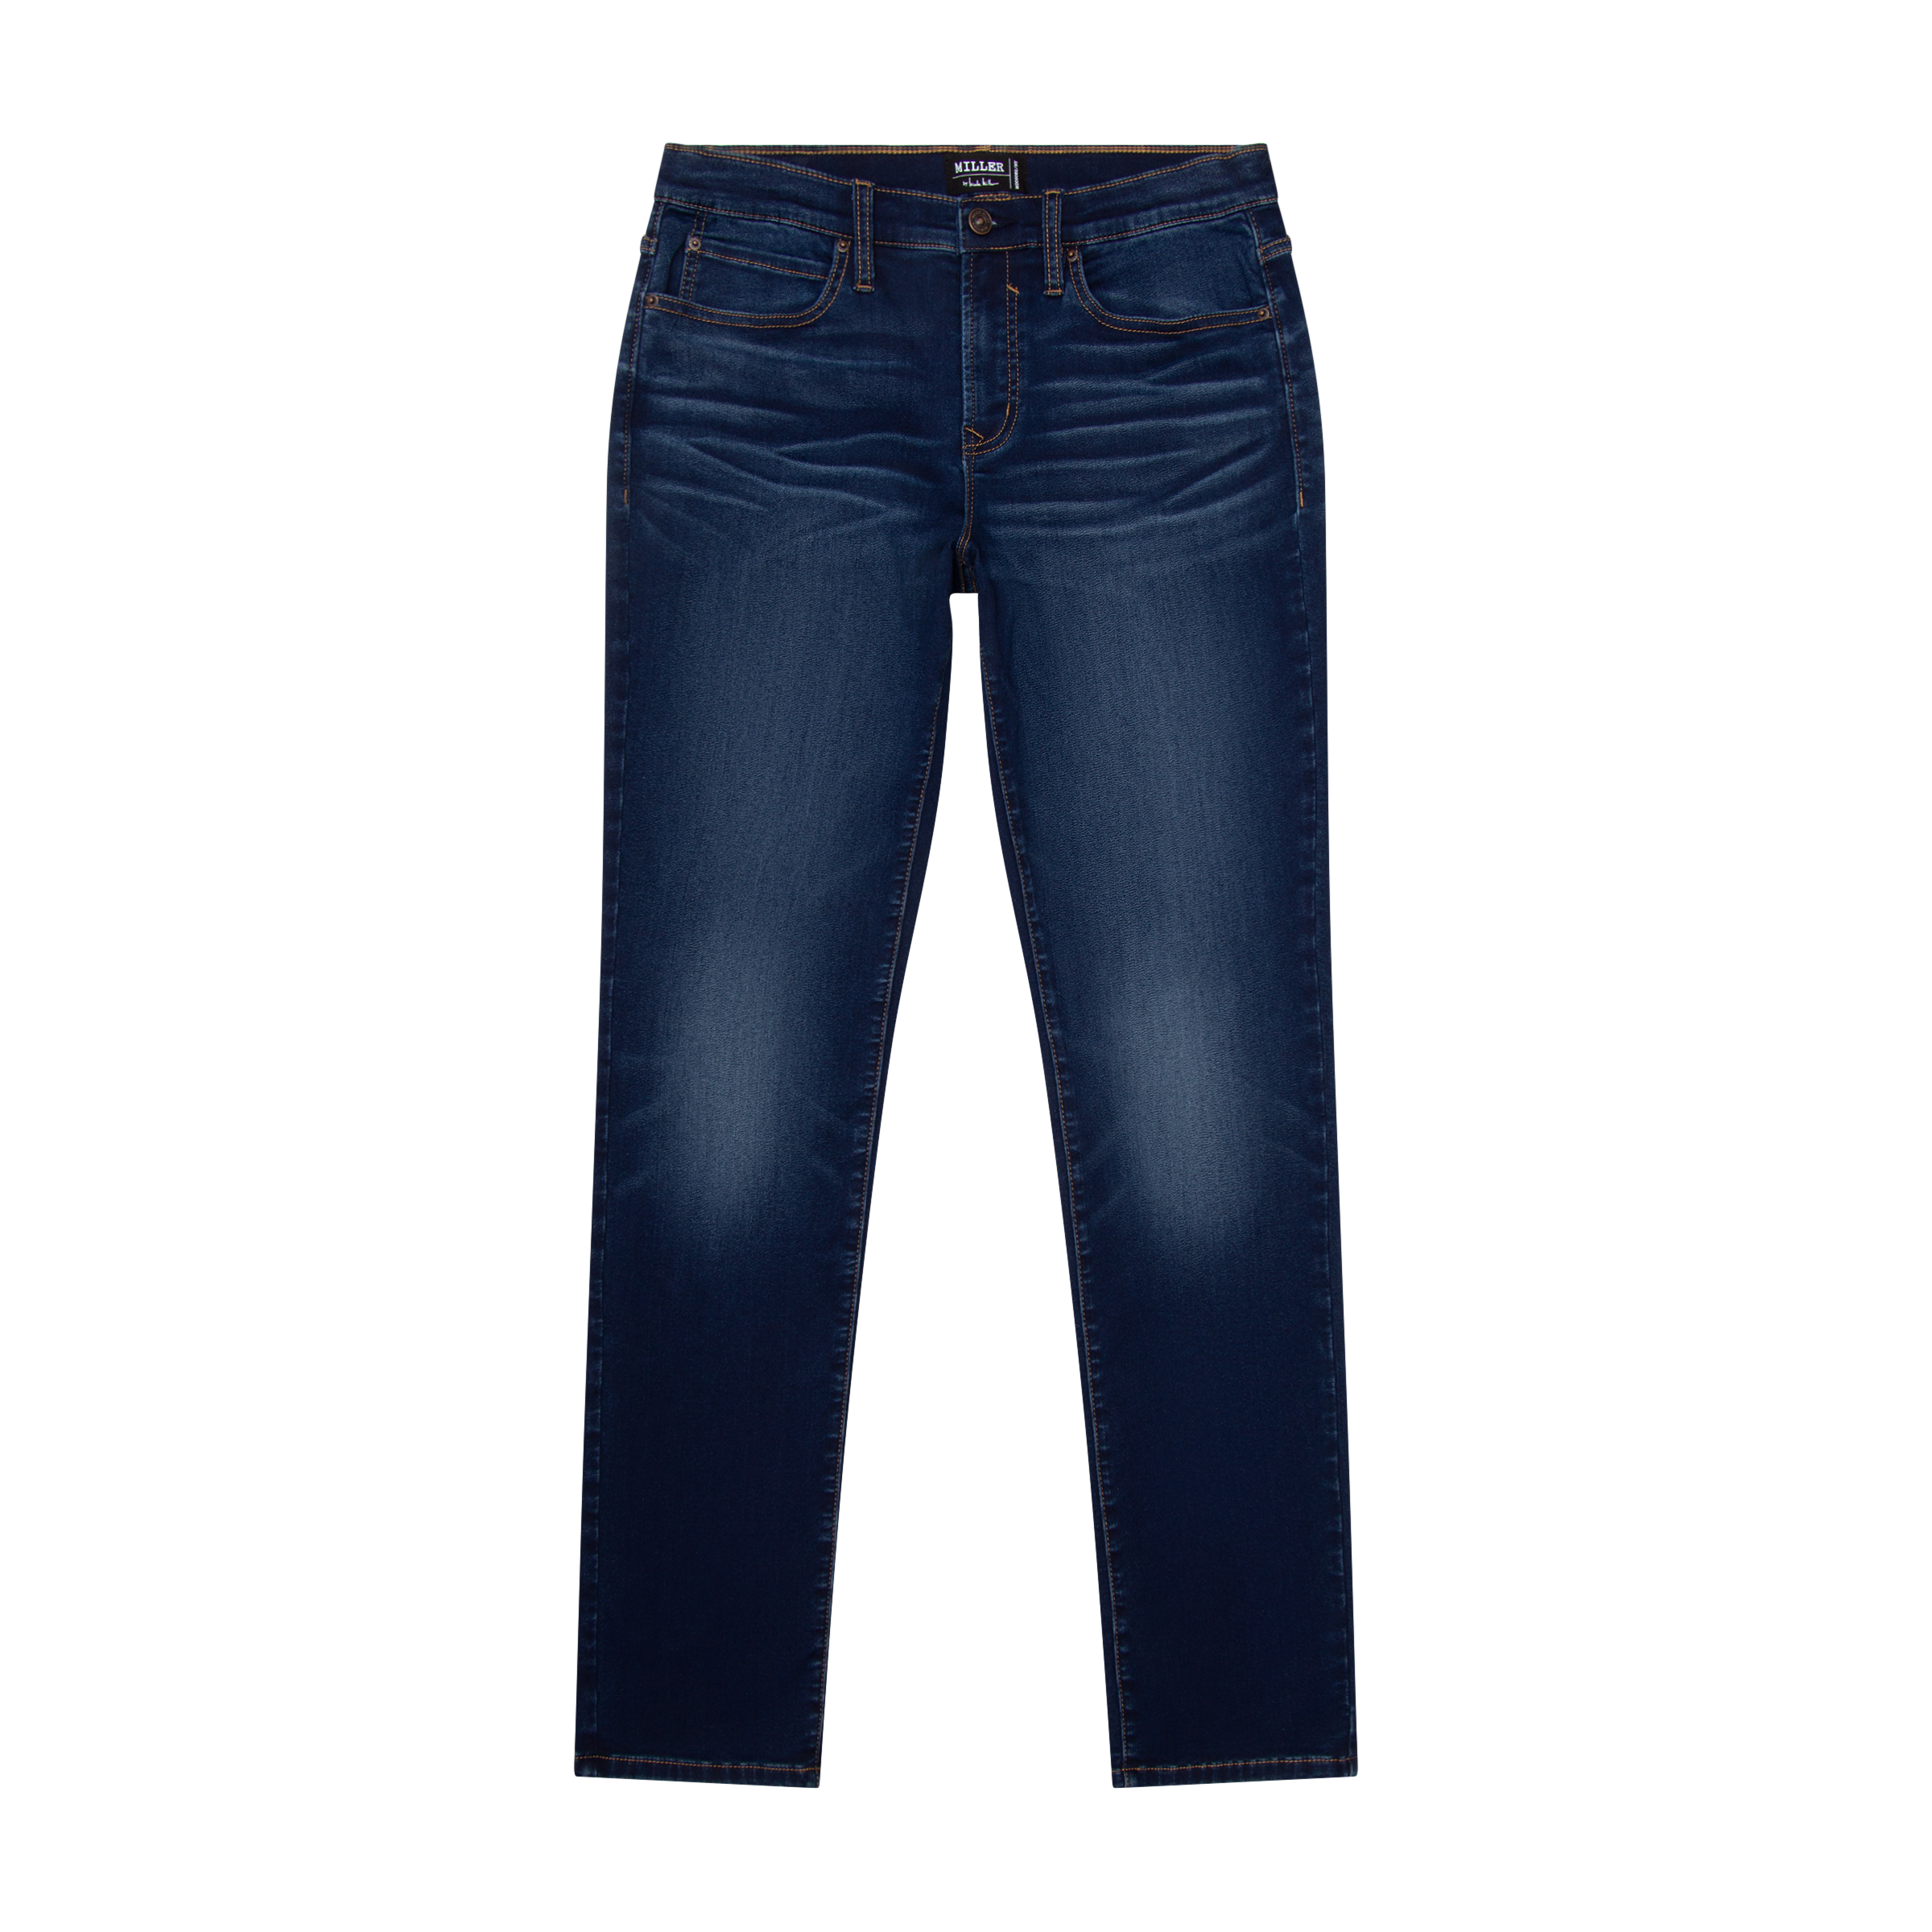 jeans product picture